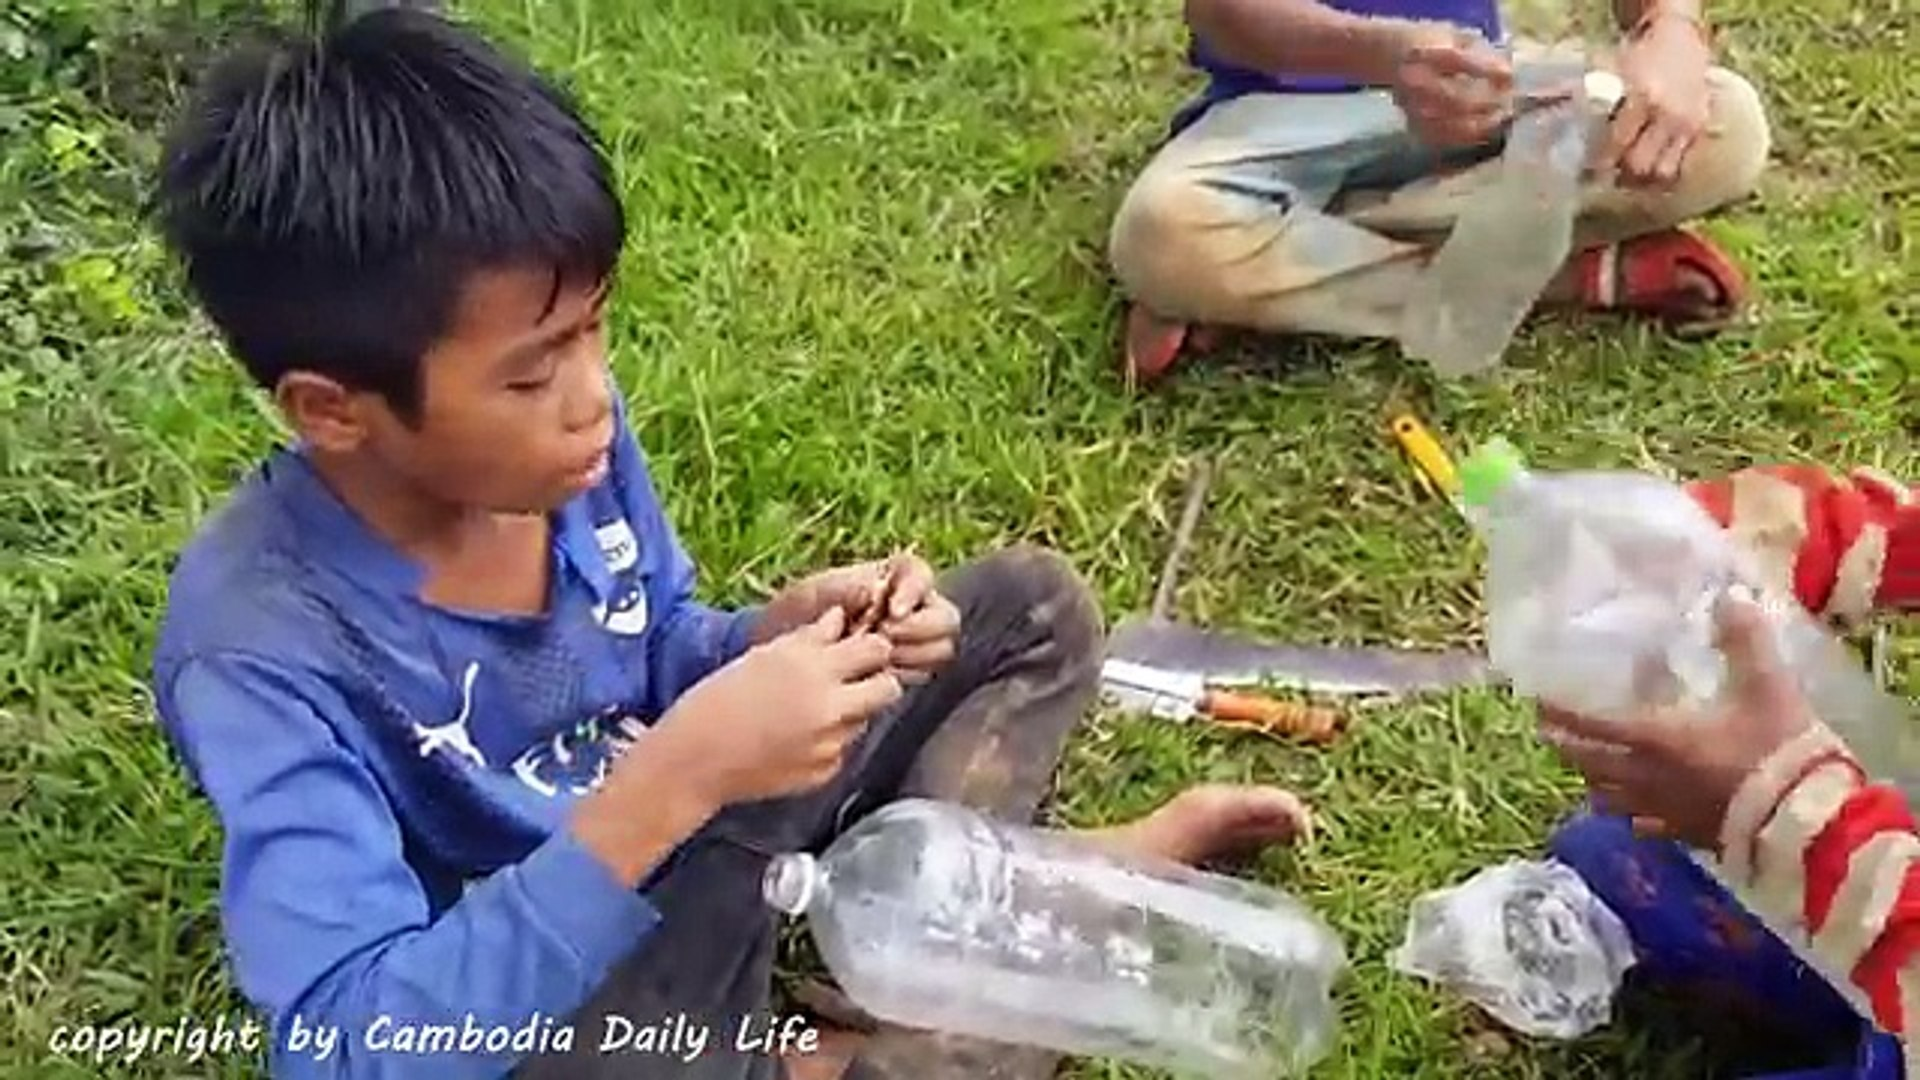 Wow!! Smart Children Catch Tree Snake Using Bottle Trap - How To Catch Tree Snake With Tra